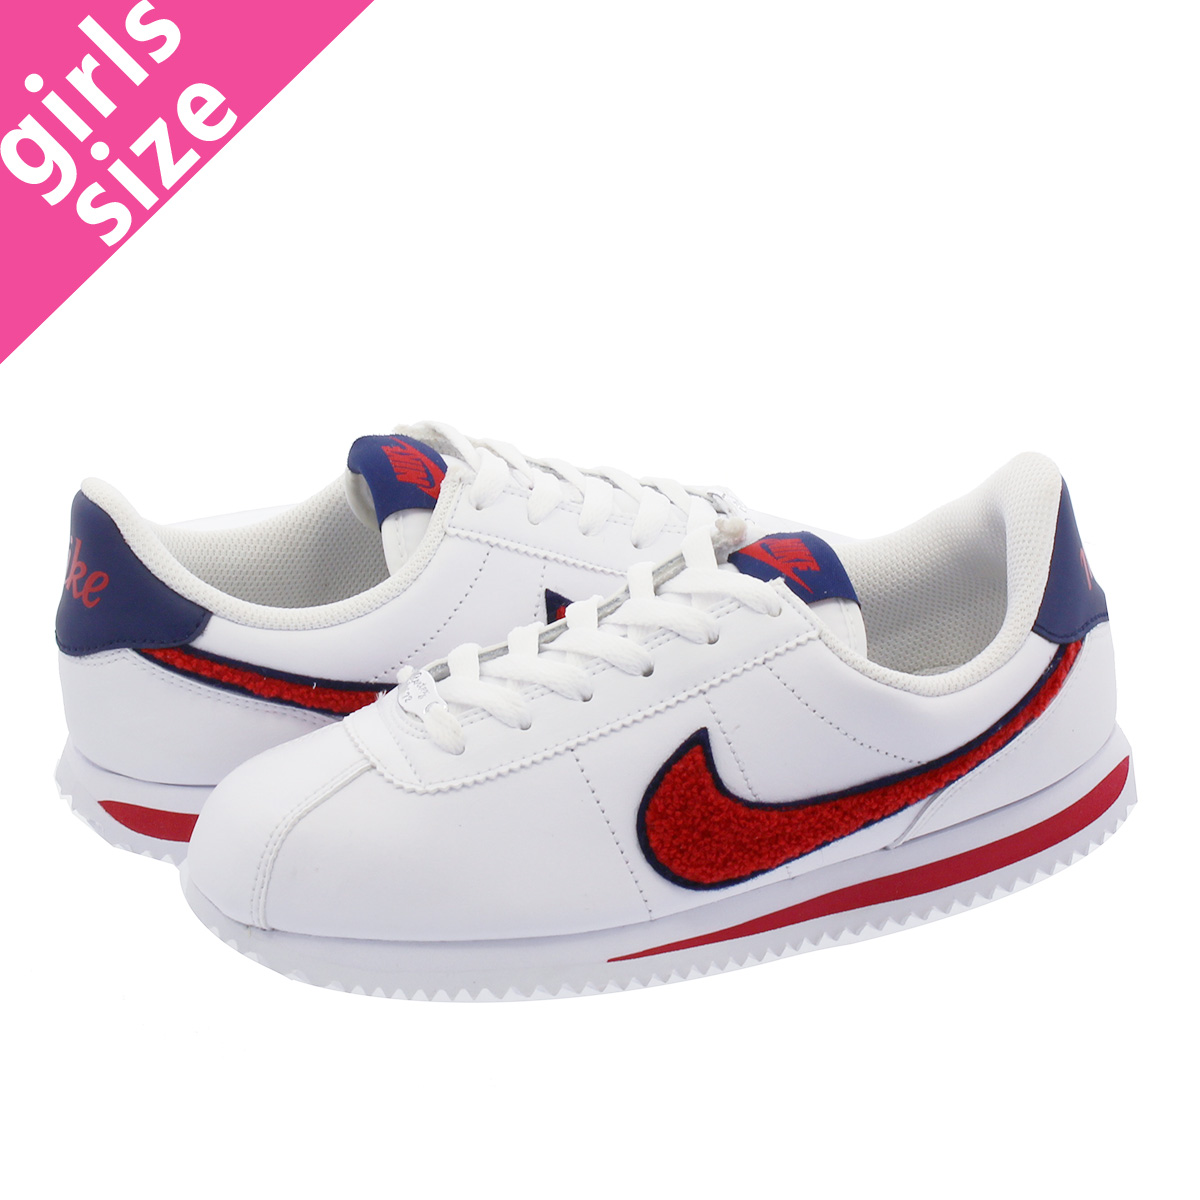 09fe8763 NIKE CORTEZ LEA SE GS ナイキコルテッツレザー SE GS WHITE/BLUE VOID/UNIVERSITY RED  aa3496-100